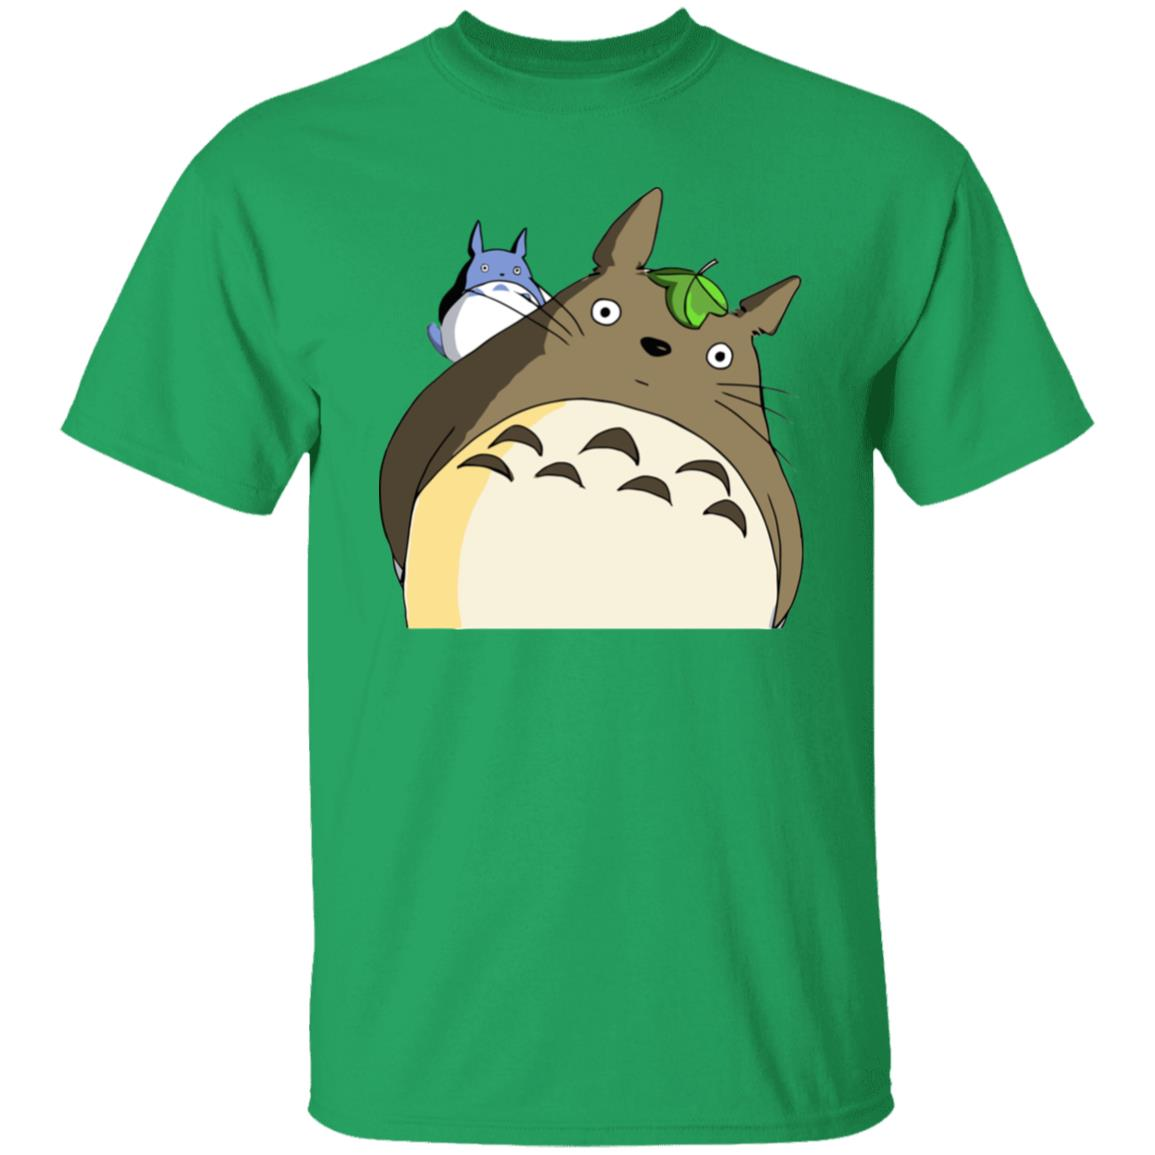 The Curious Totoro T Shirt